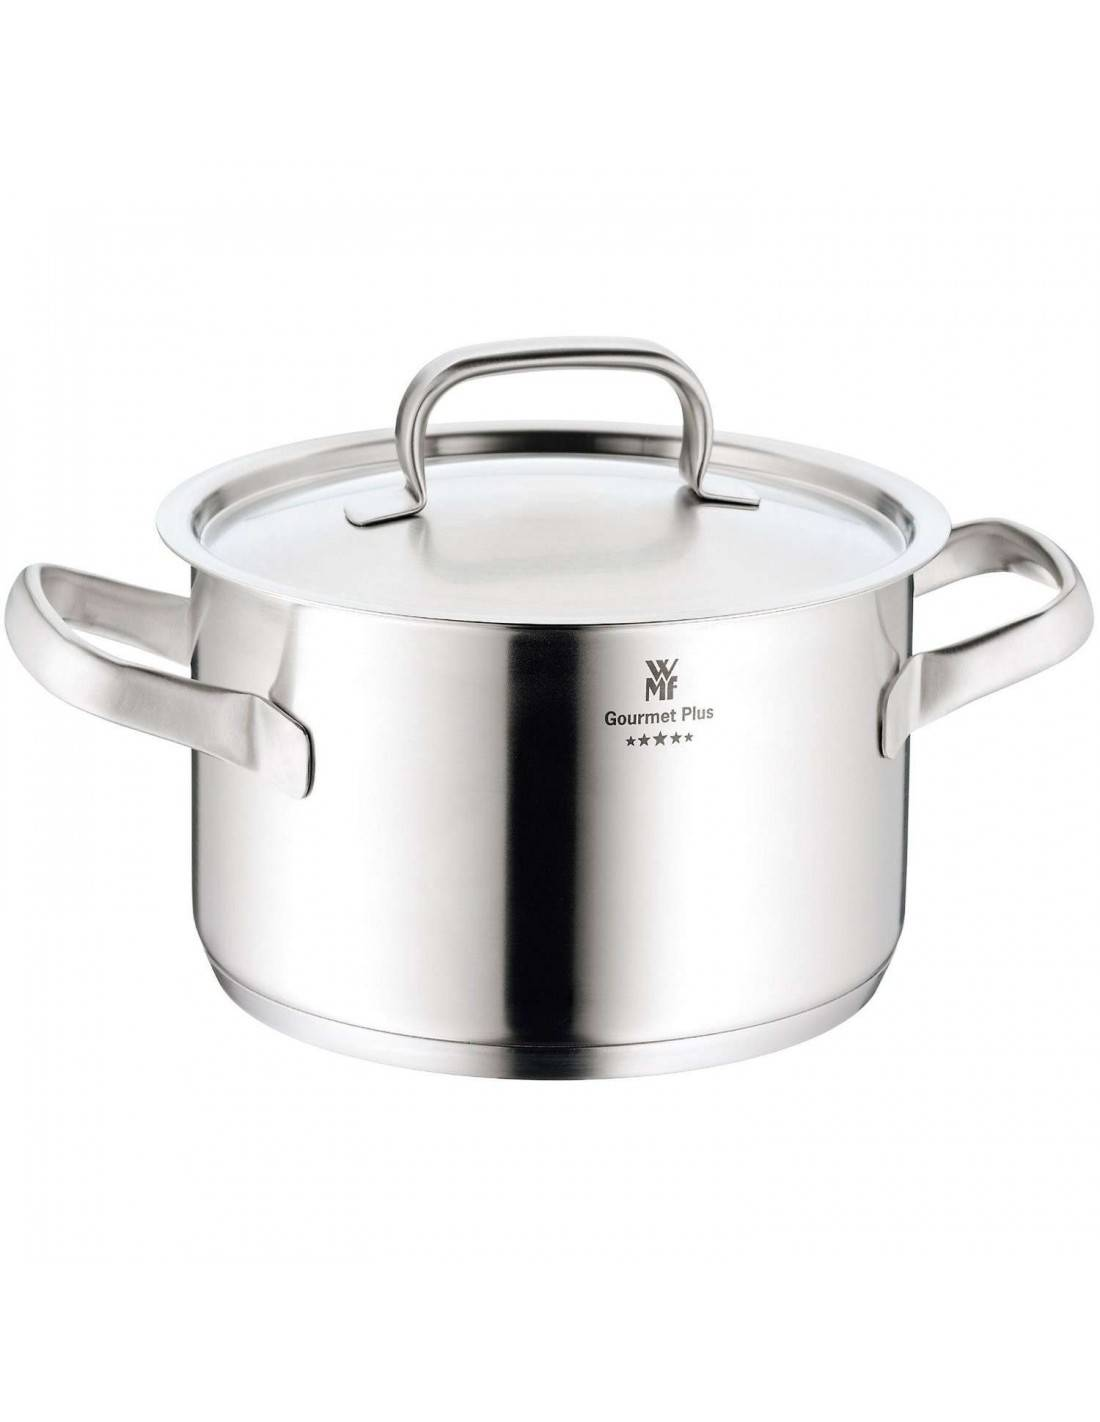 wmf gourmet plus stock pot with lid mimocook online store. Black Bedroom Furniture Sets. Home Design Ideas